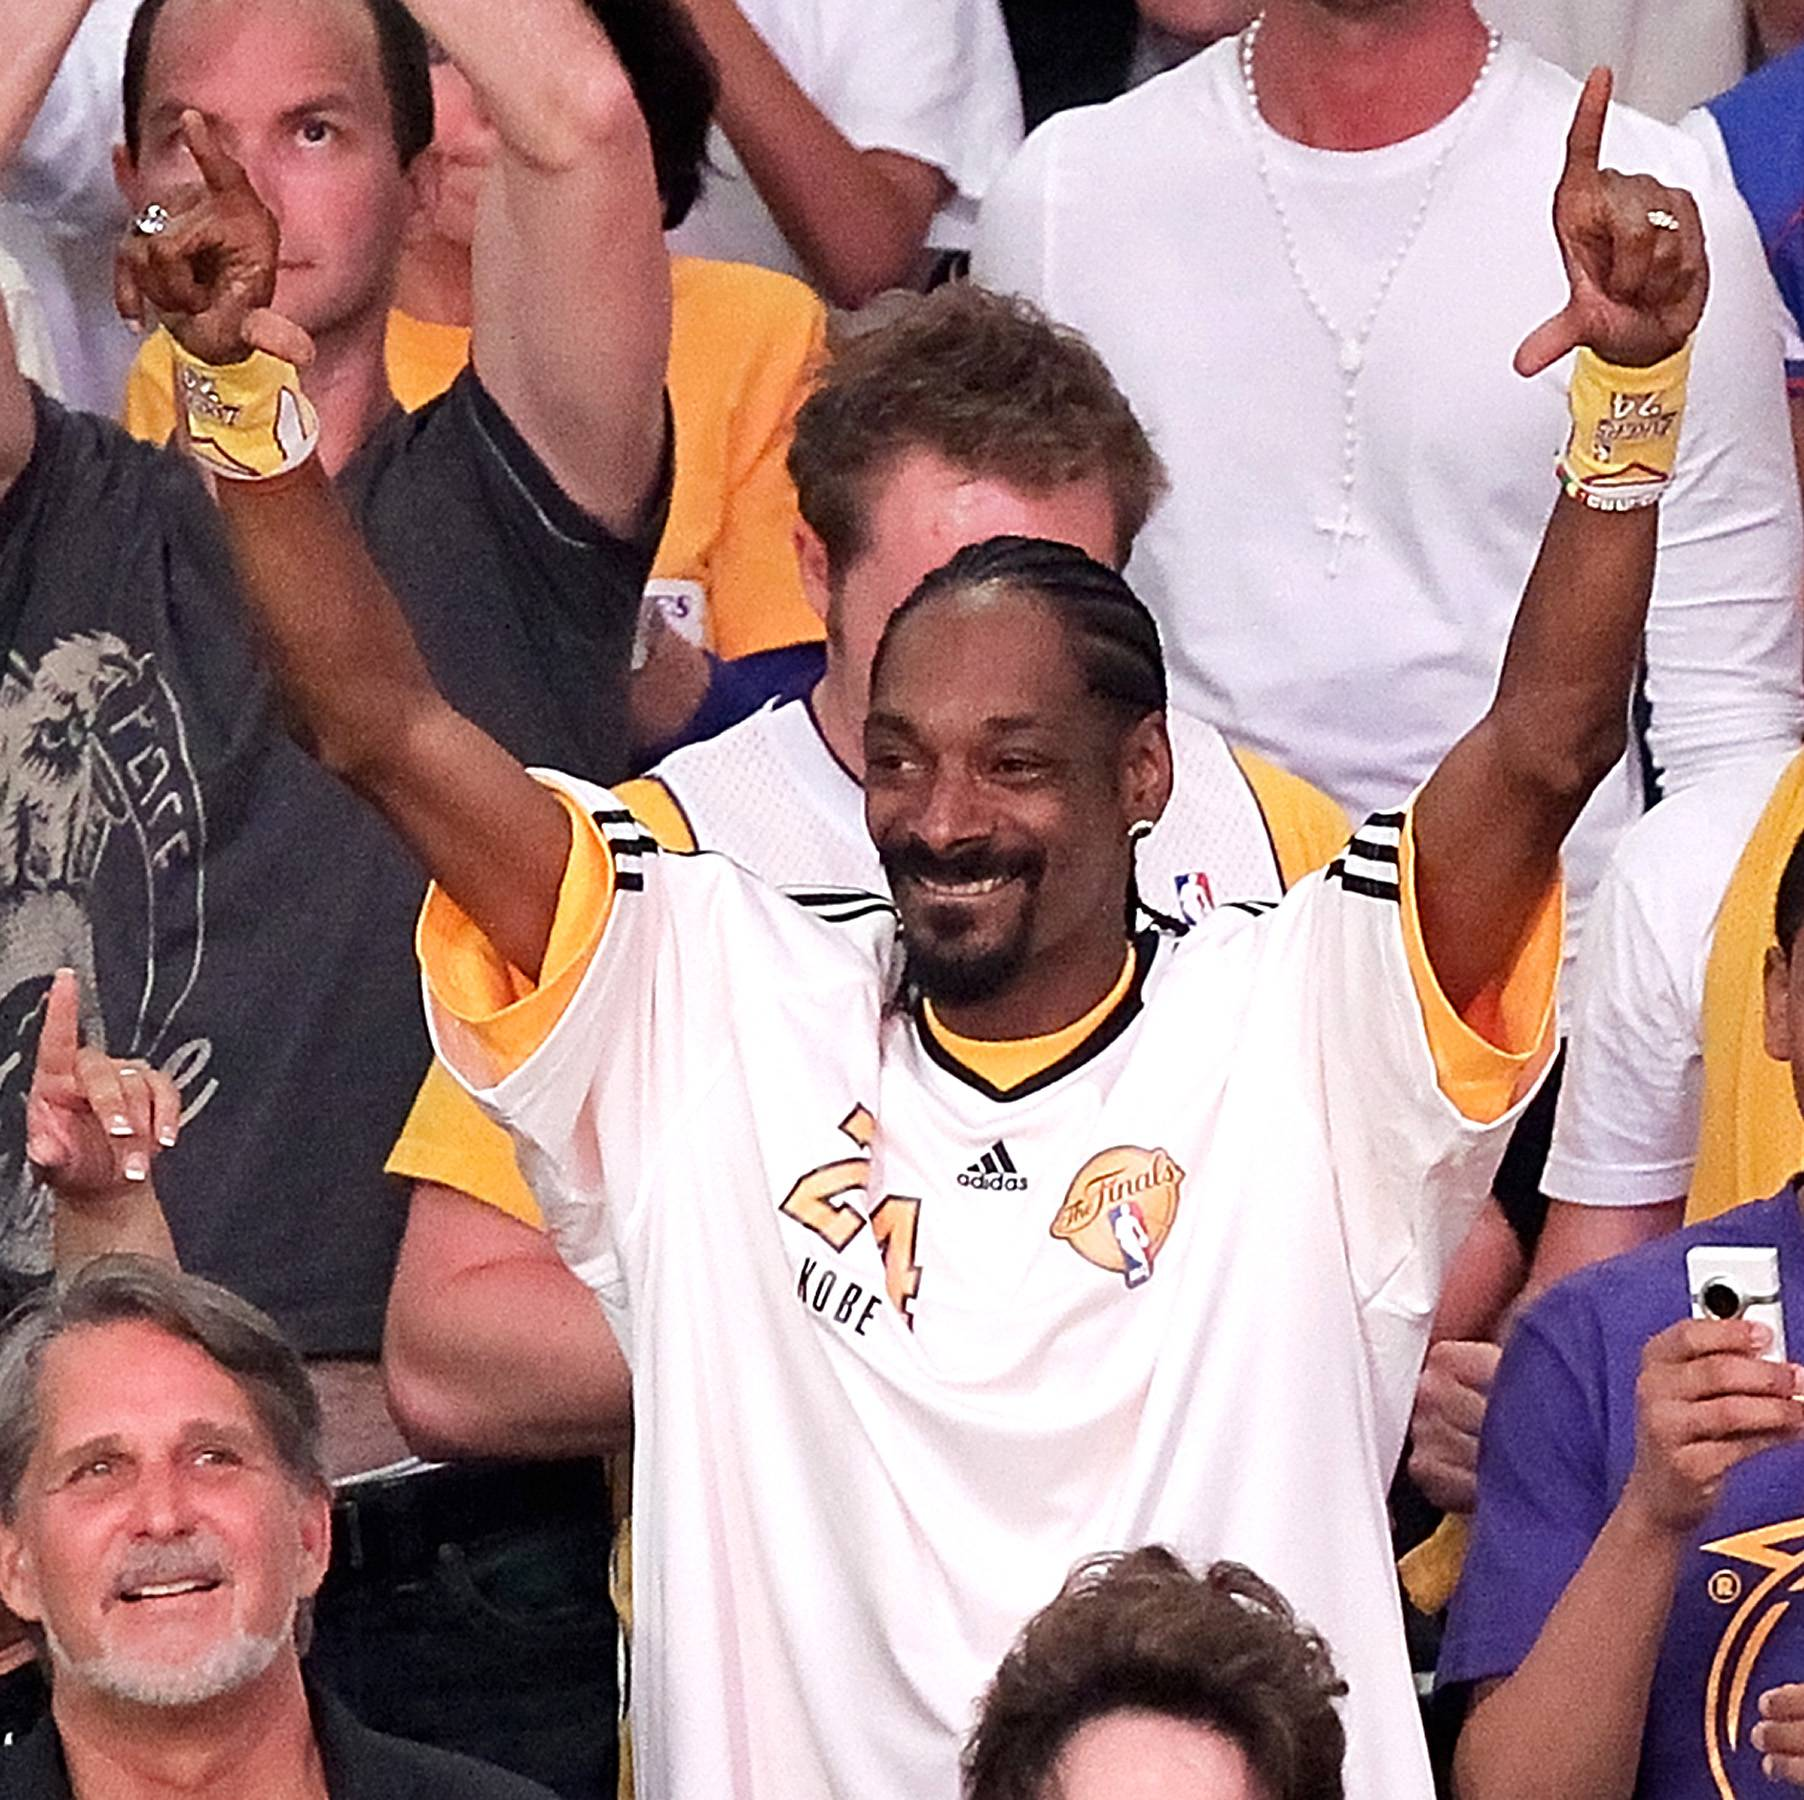 Snoop - Snoop keeps a Lakers reference in his lyrics and on his Twitter. The West Coast repper also designed some purple and yellow-inspired sneakers for Adidas.(Photo: Noel Vasquez/Getty Images)